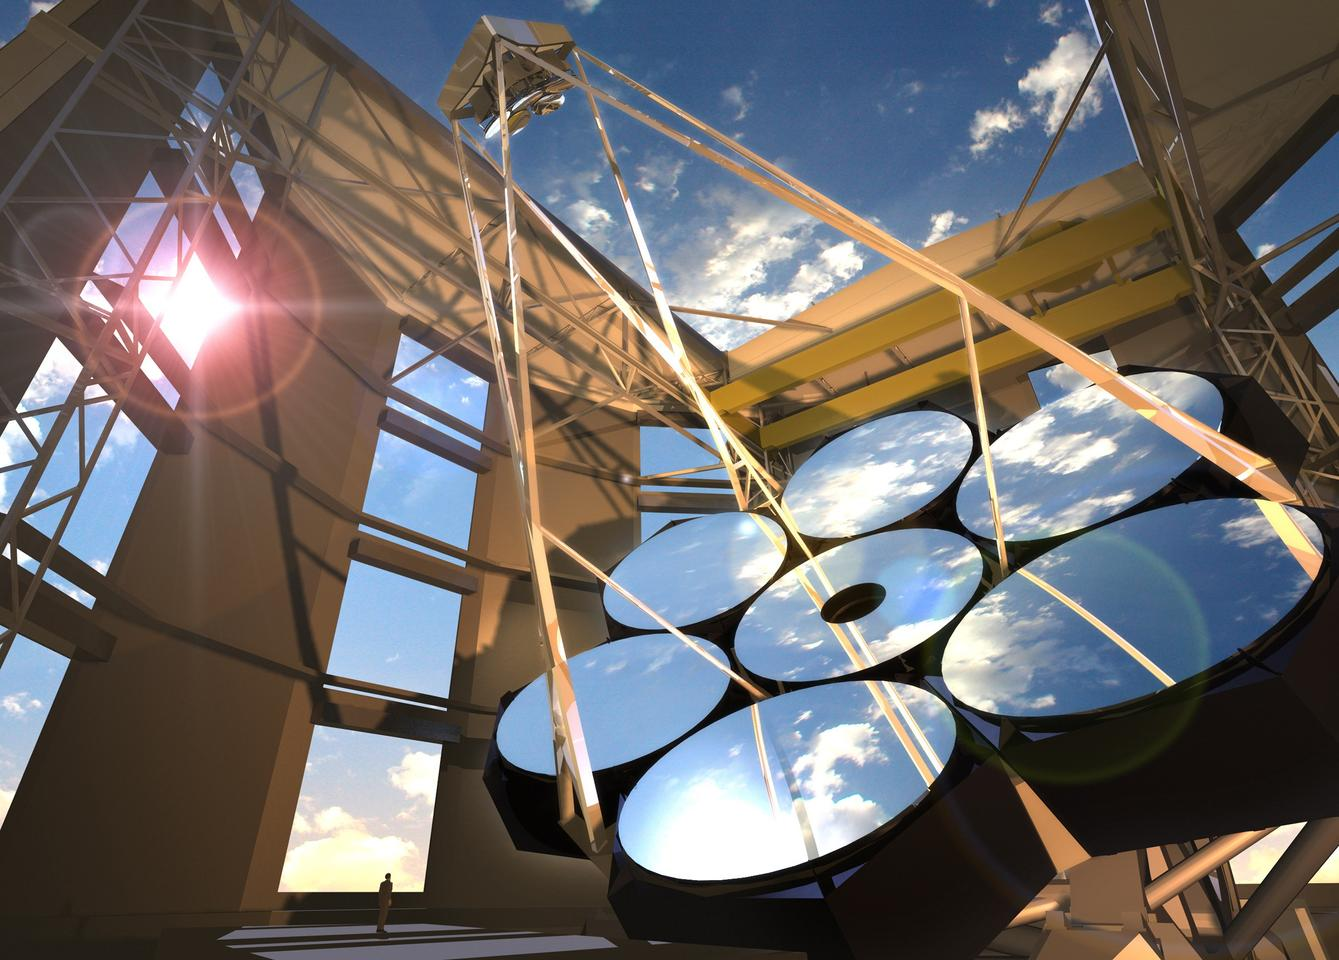 The GMT is composed of seven 27-foot mirrors (Image: Giant Magellan Telescope - GMTO Corporation)